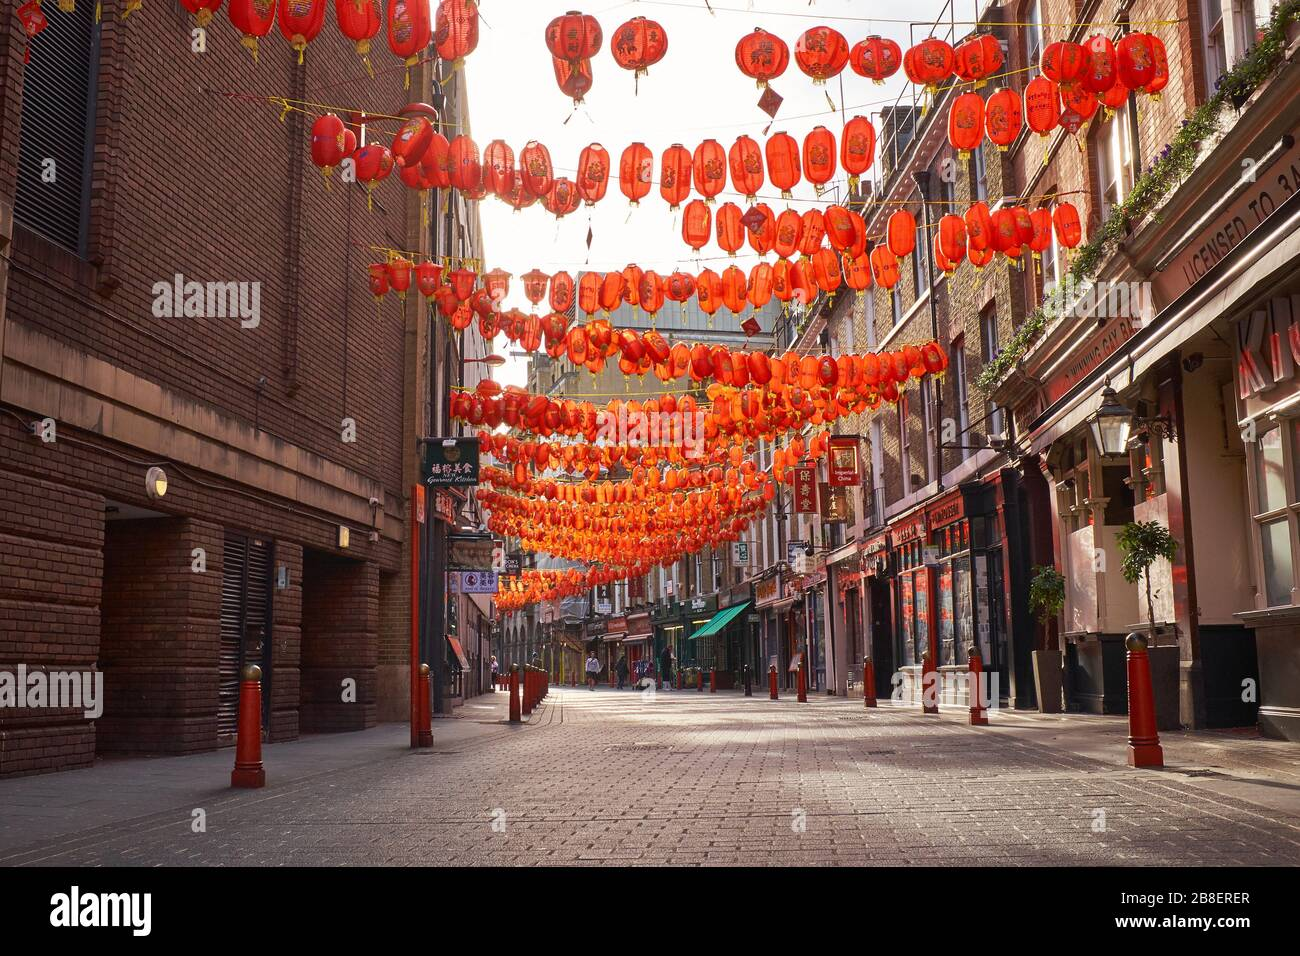 March 21st, 2020-Soho, London, England: Chinatown is almost deserted during the Coronavirus pandemic Stock Photo